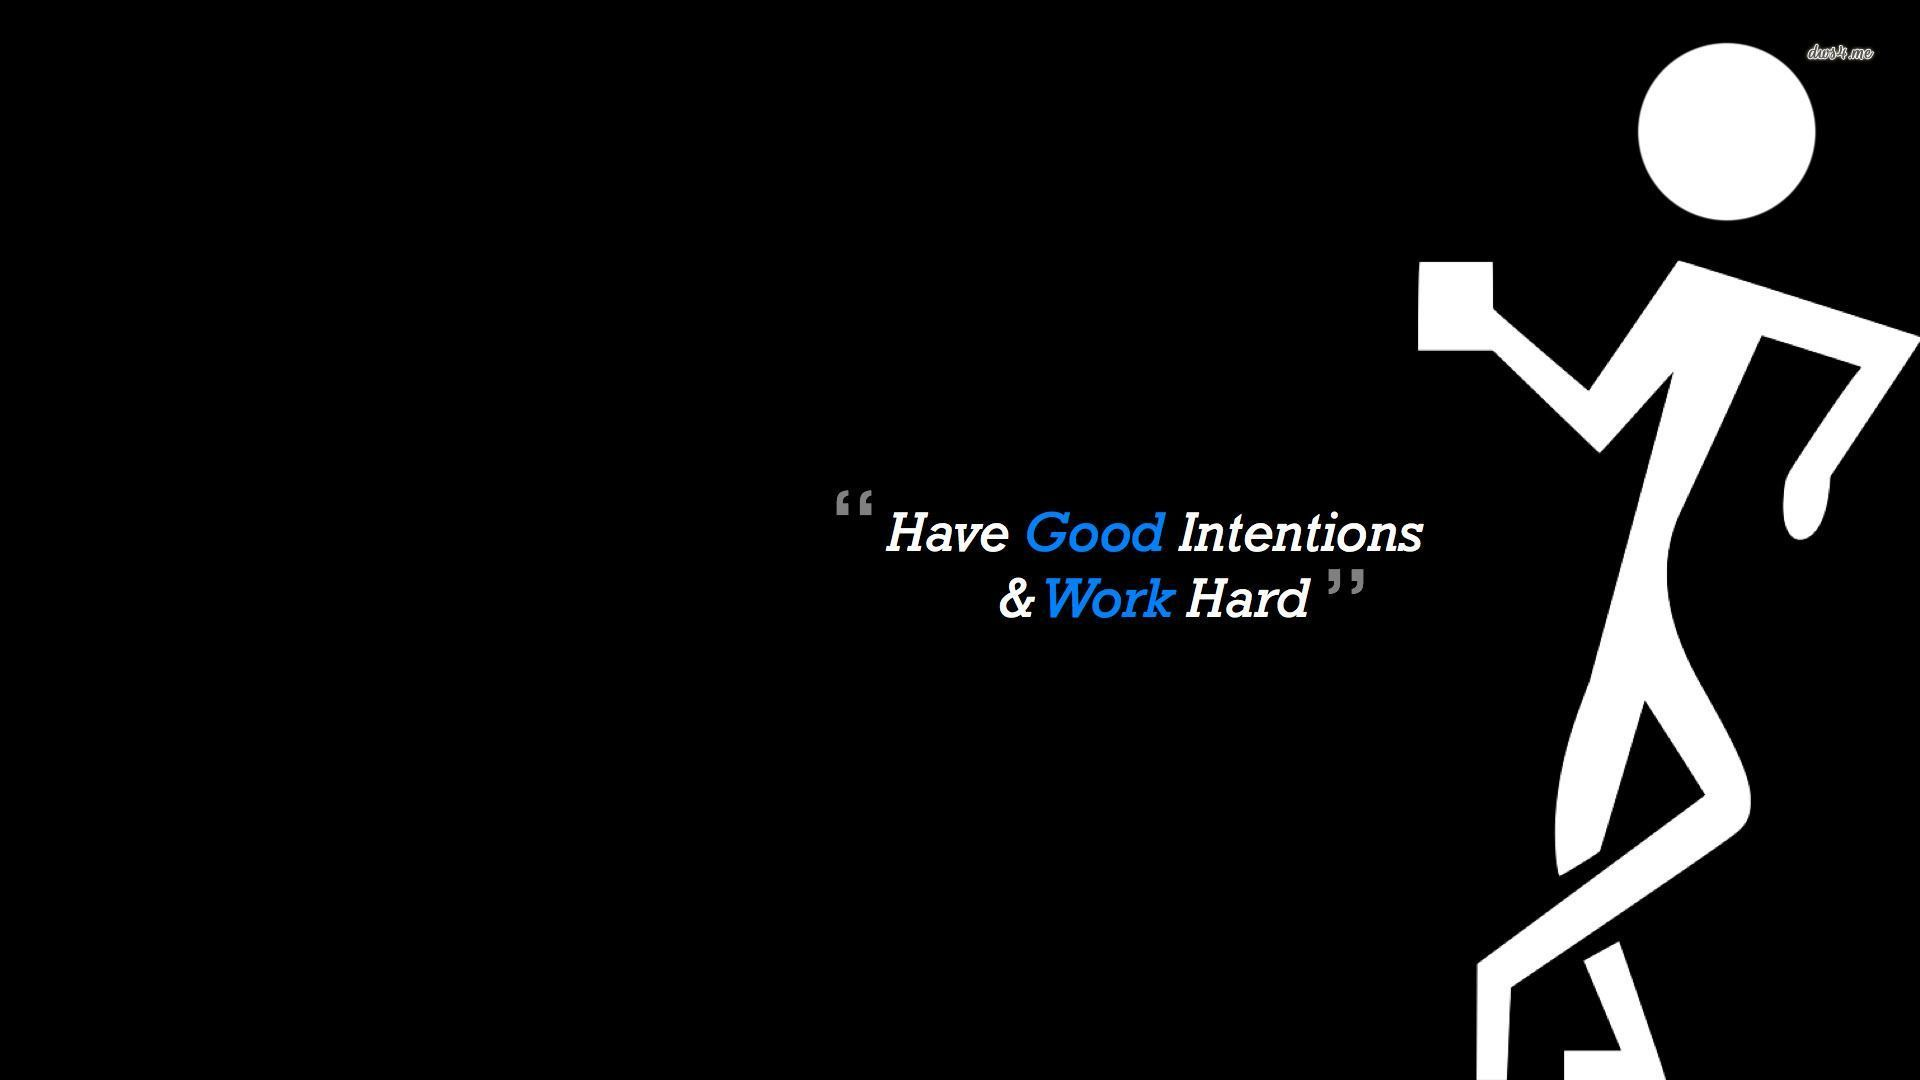 50 Best Motivational Wallpapers With Inspiring Quotes